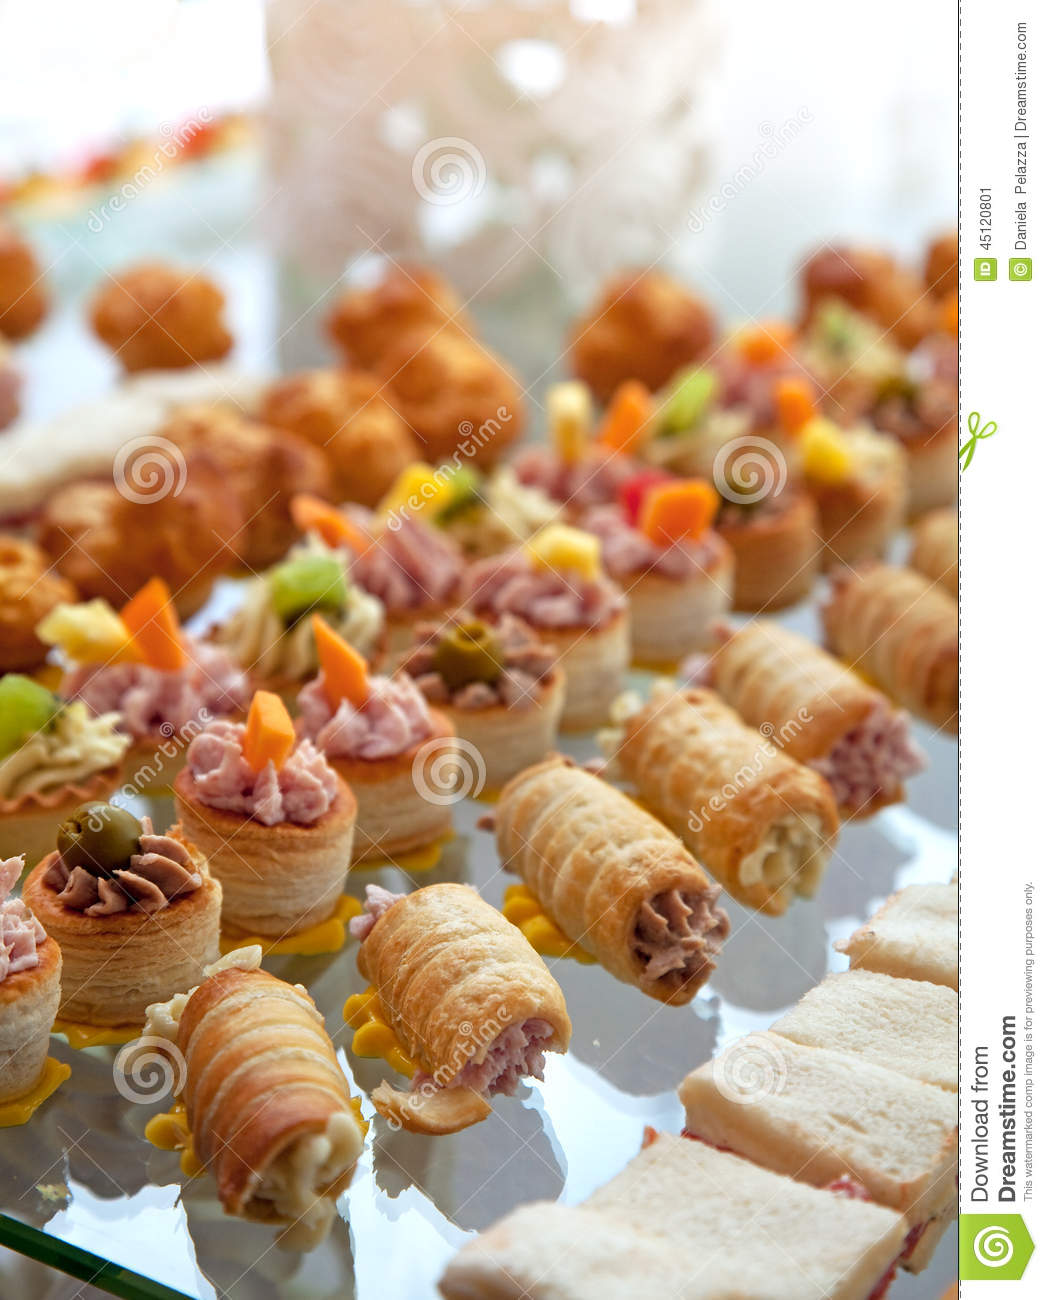 Wedding Cocktail Food Ideas: Food For Cocktail On Wedding Party Stock Image